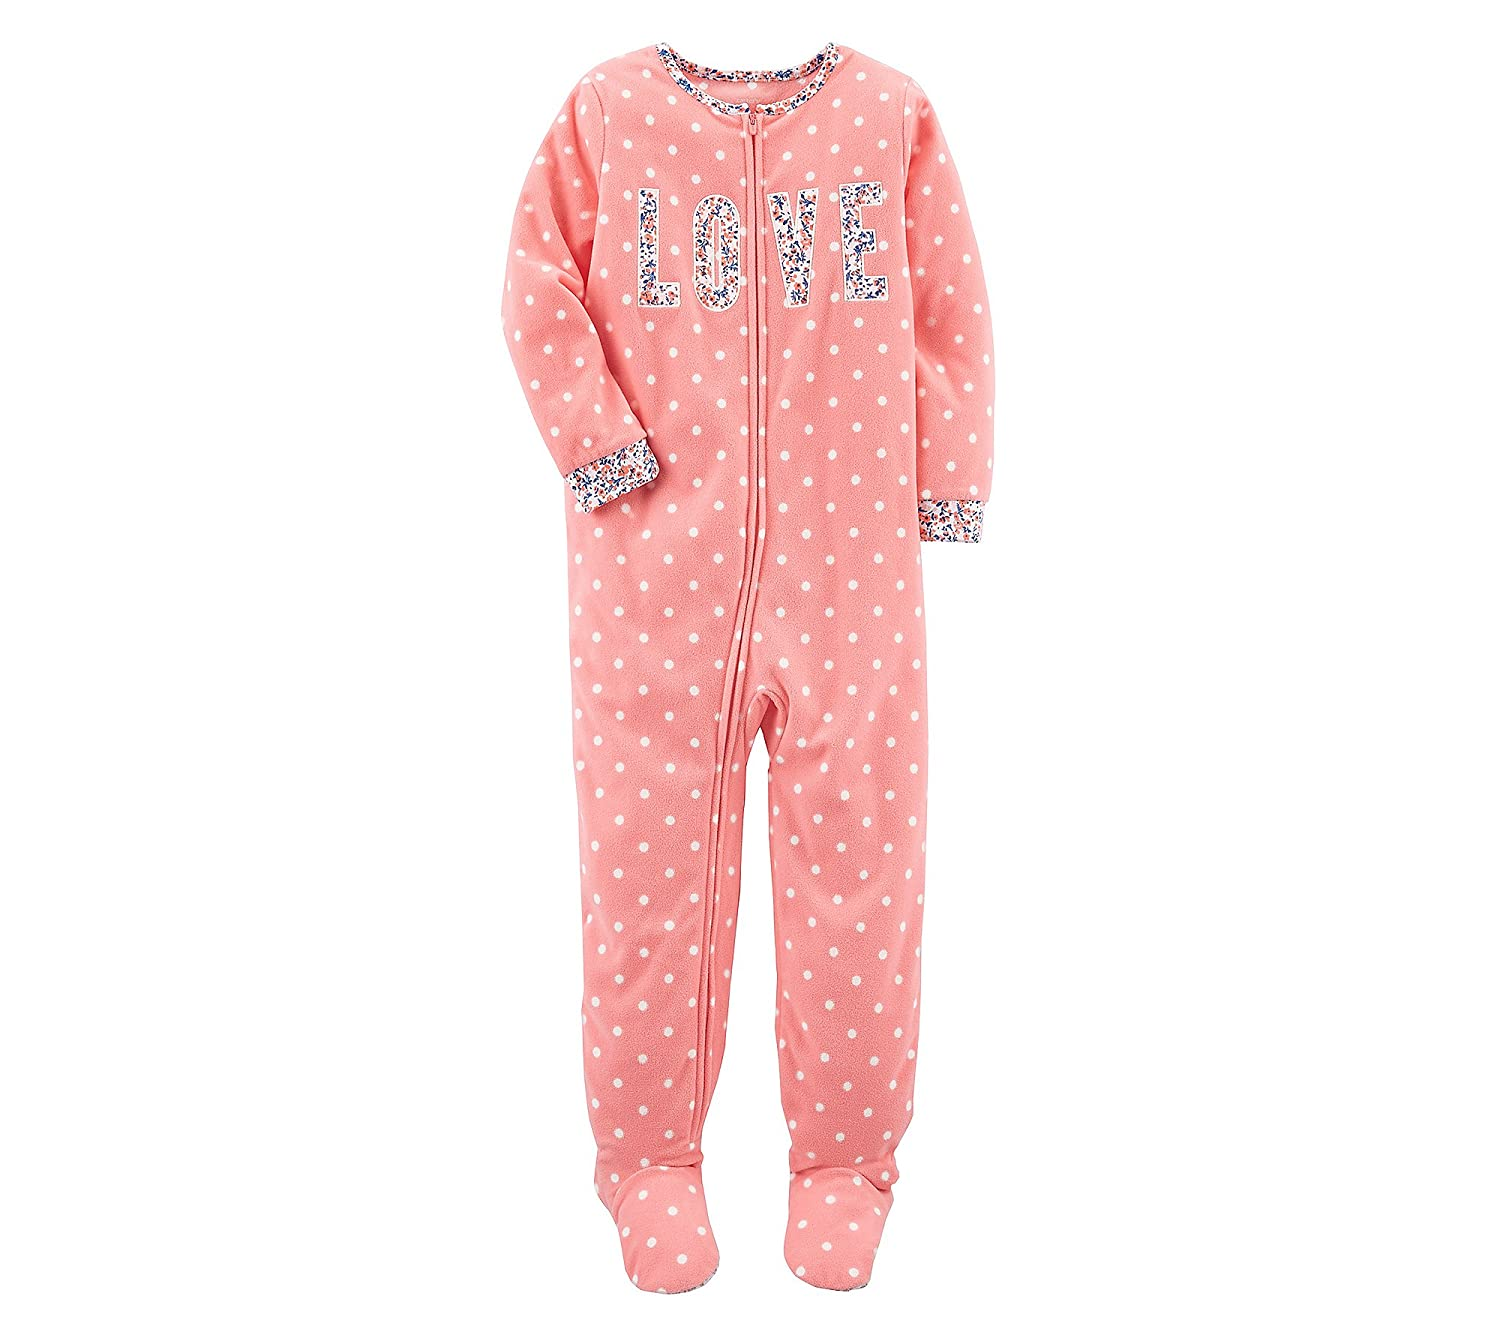 Carter's Girls' 10-14 One Piece Love Fleece Pajamas 397G157